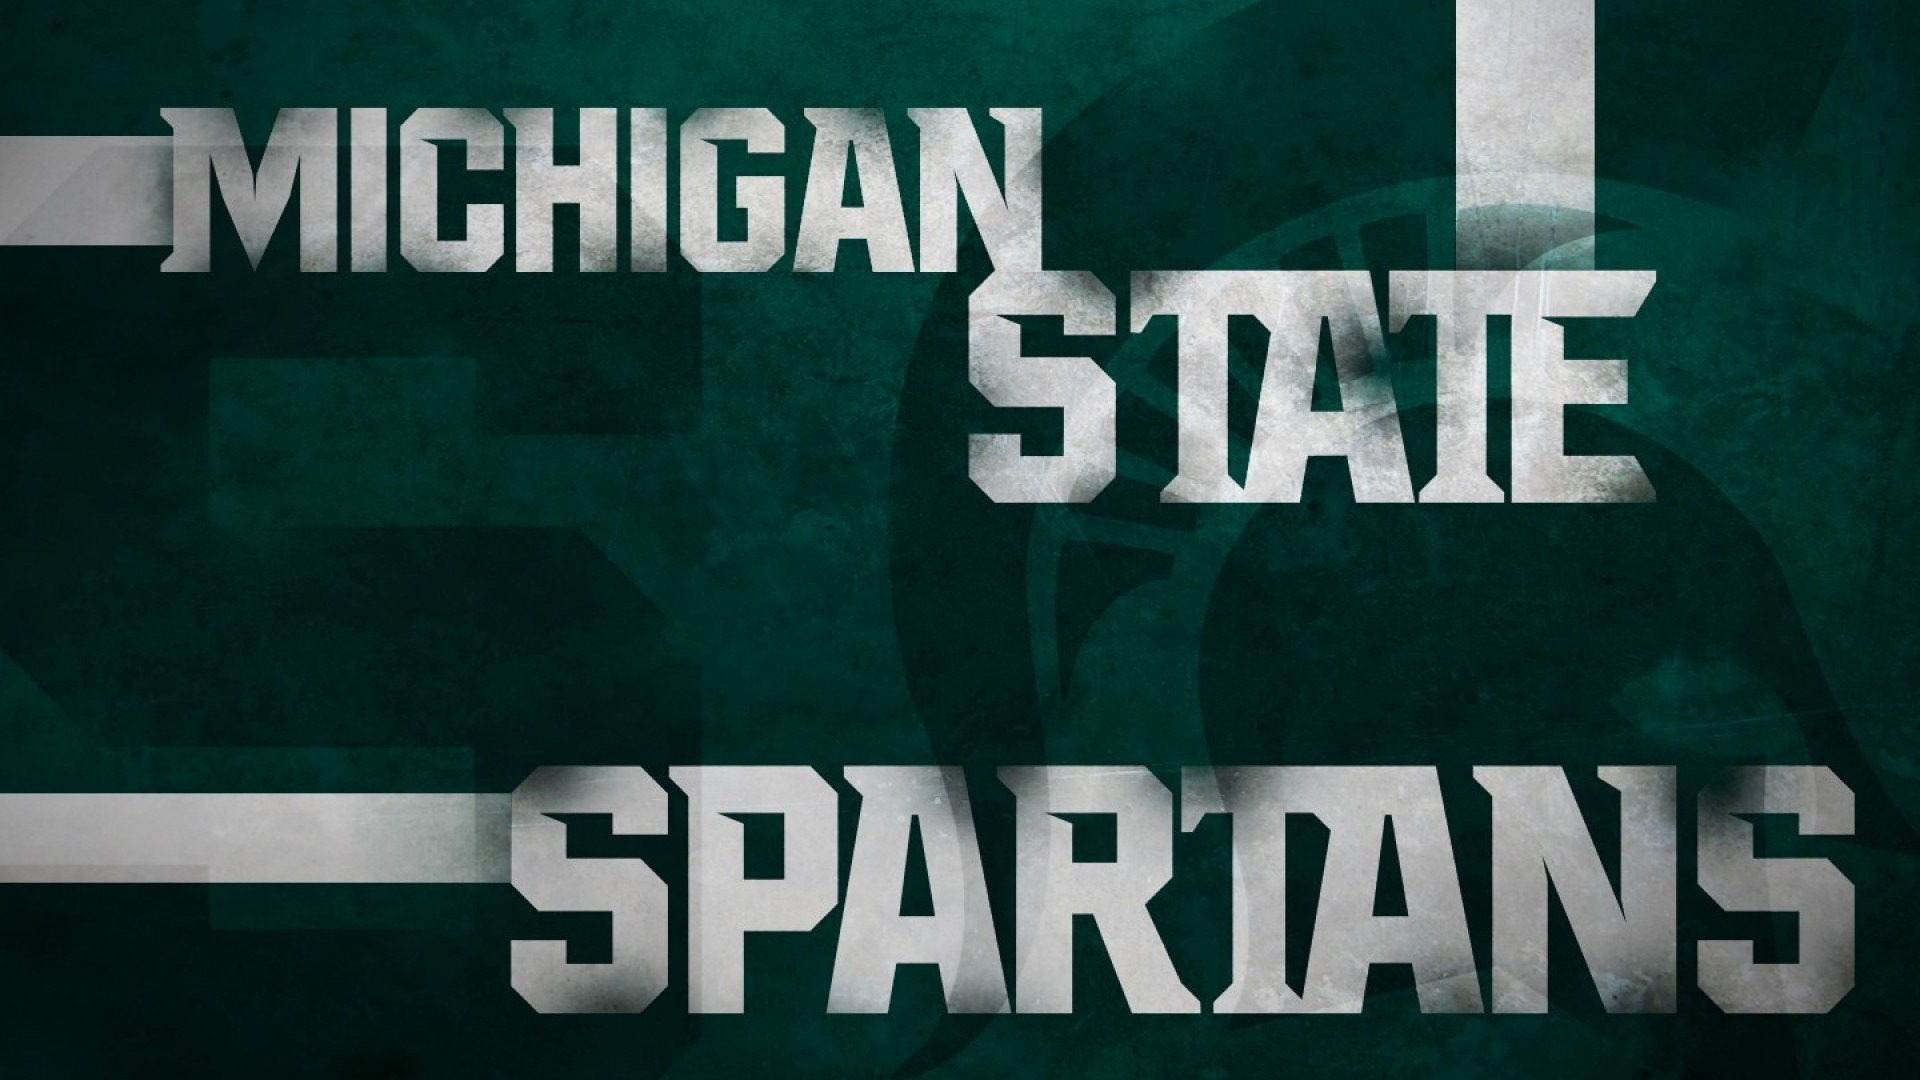 1920x1080 Football Michigan State NCAA wallpaper HD. Free desktop background .